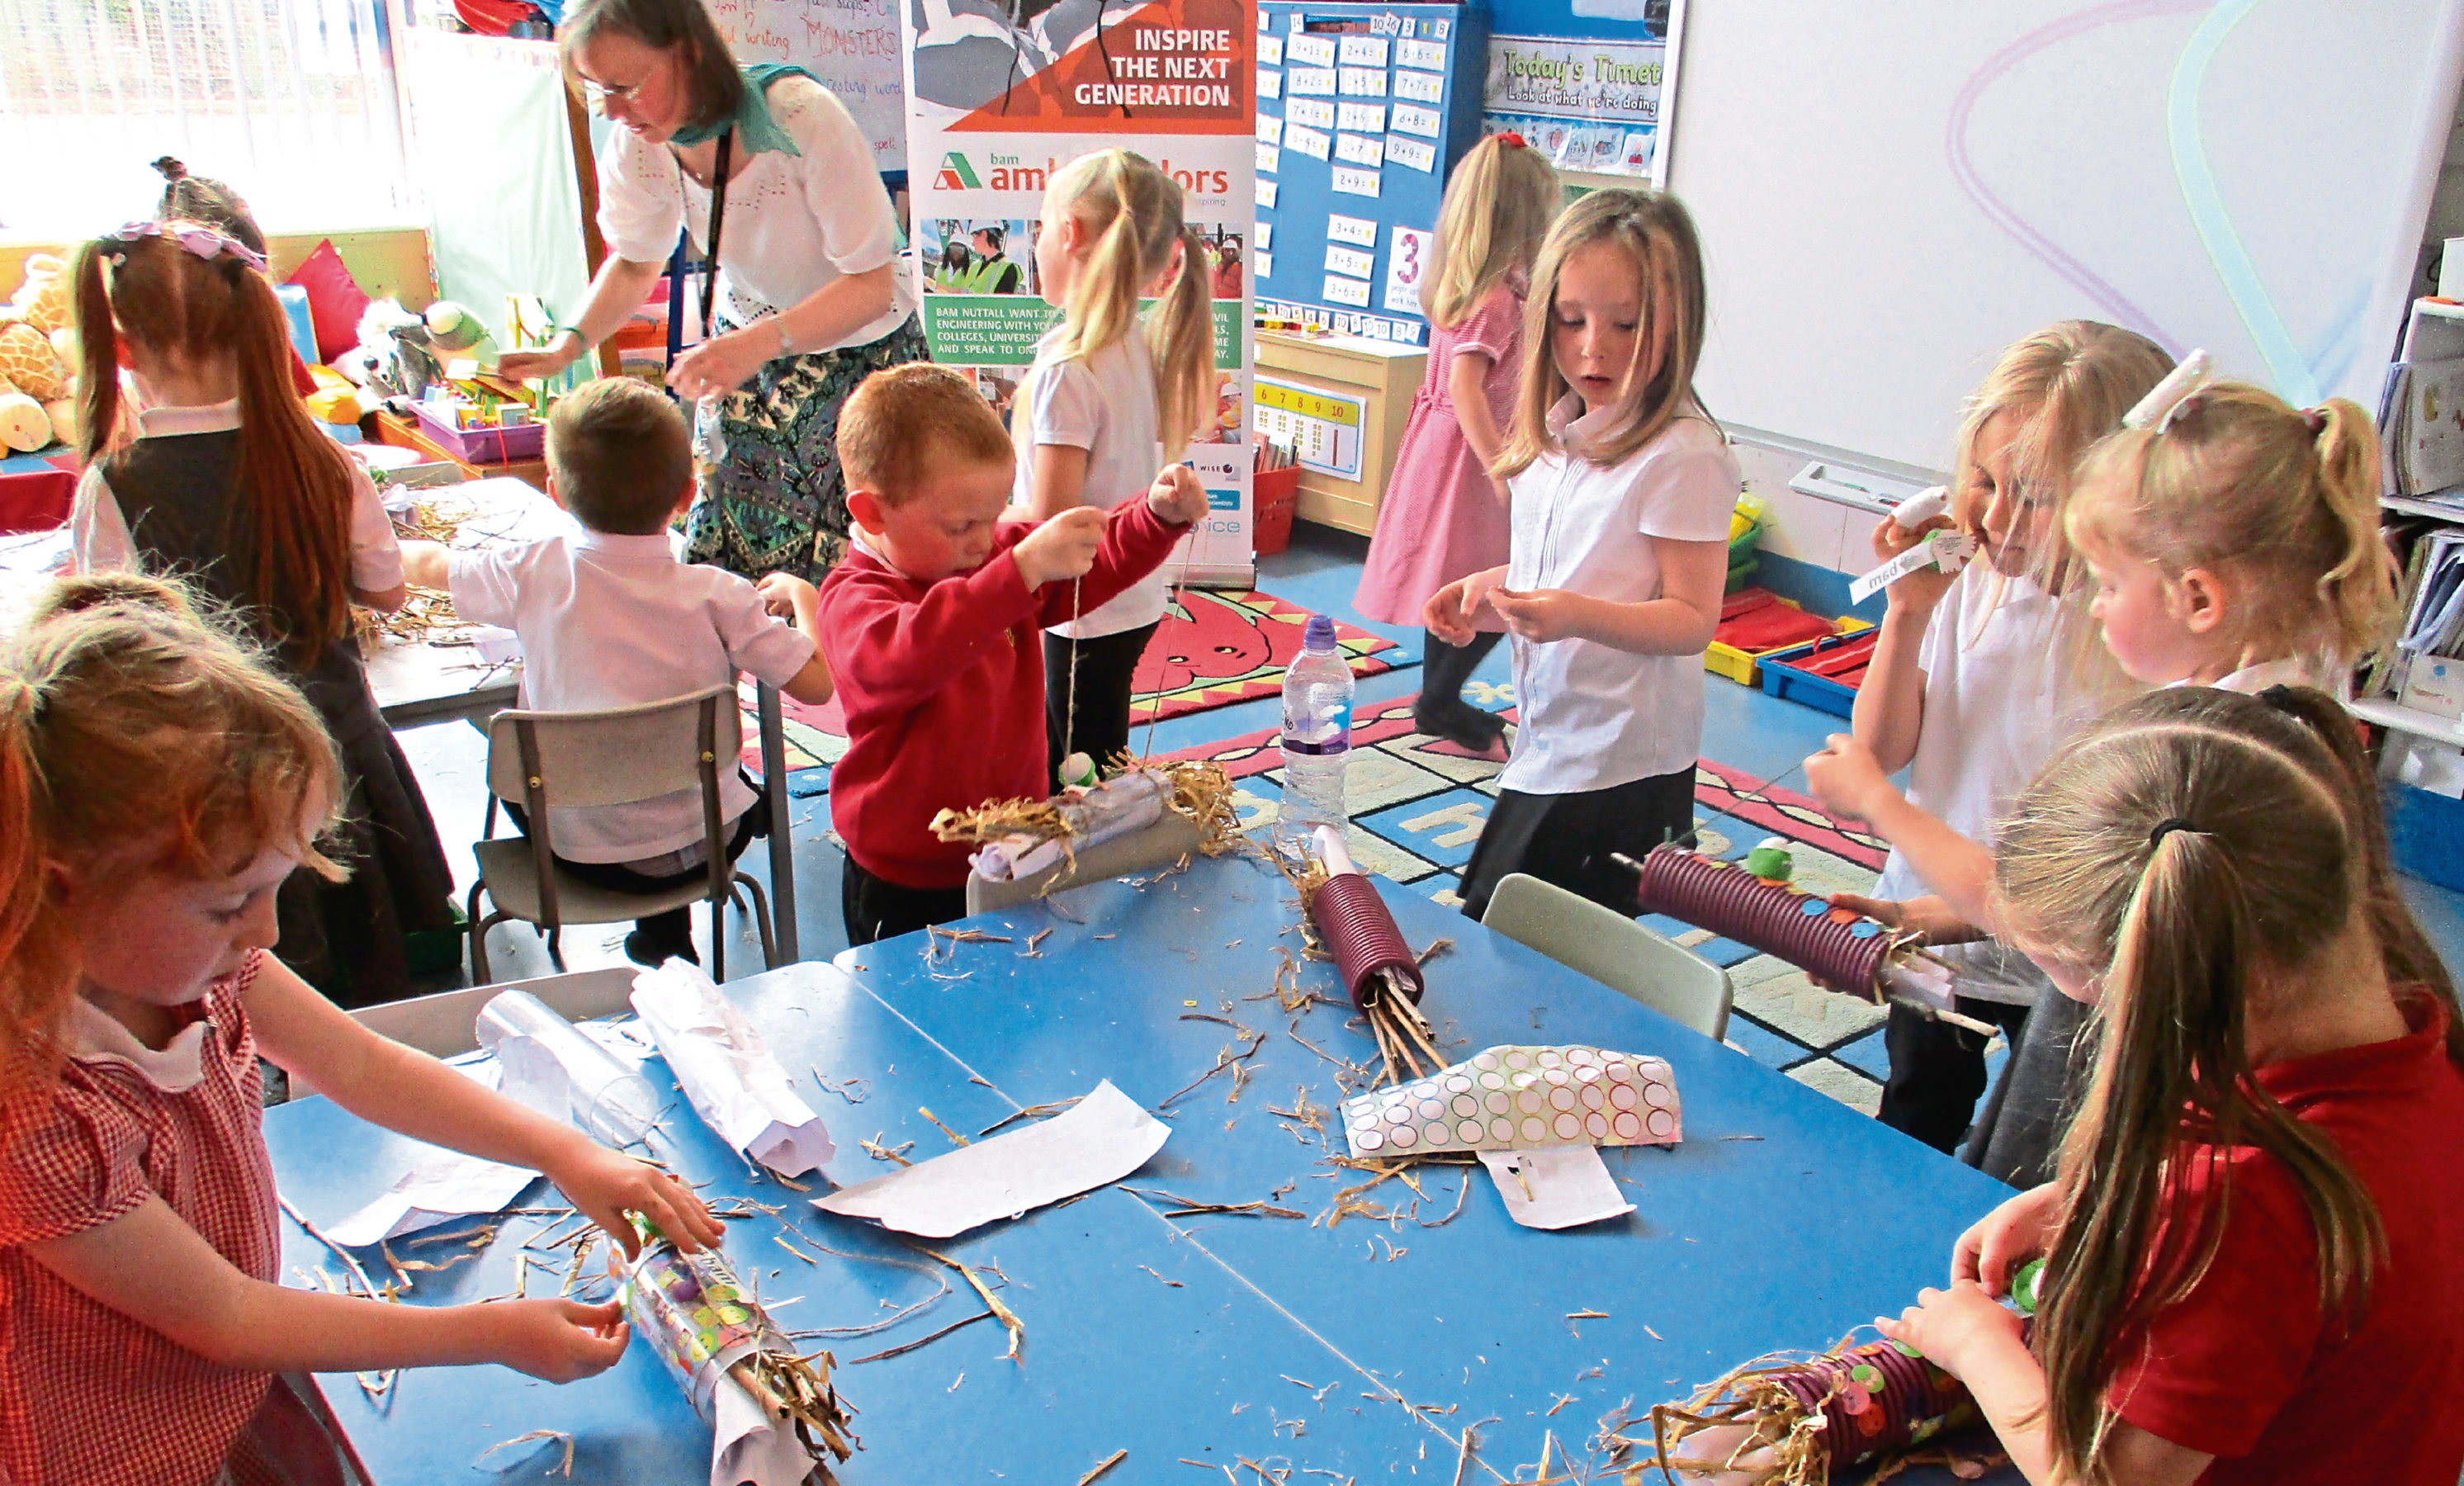 Pupils at the school took part in a series of workshops.